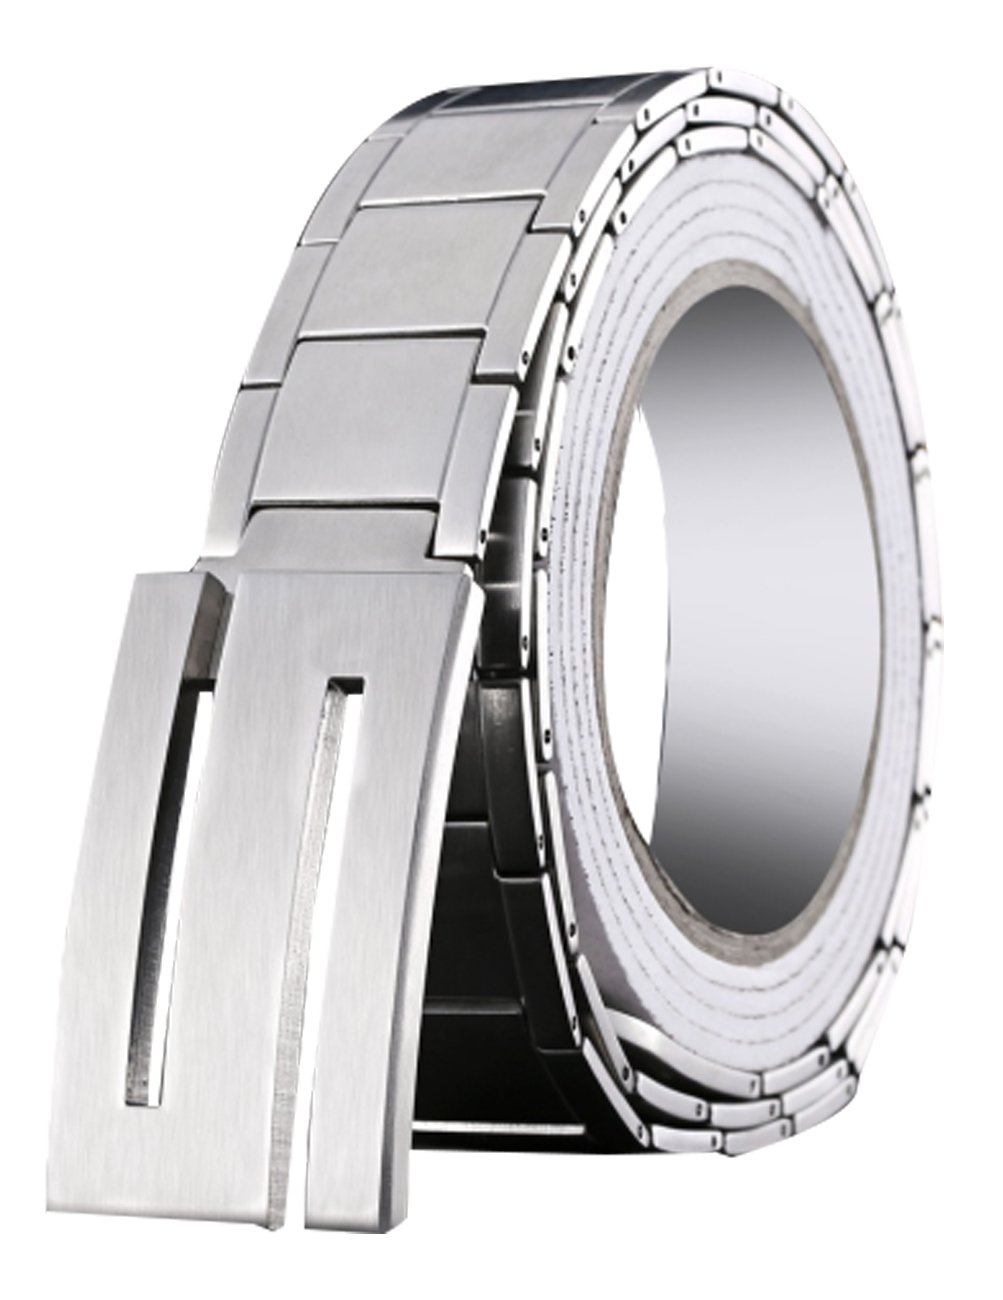 Menschwear Men's Stainless Steel Belt Slide Buckle Adjustable 32mm Silver 130cm by Menschwear